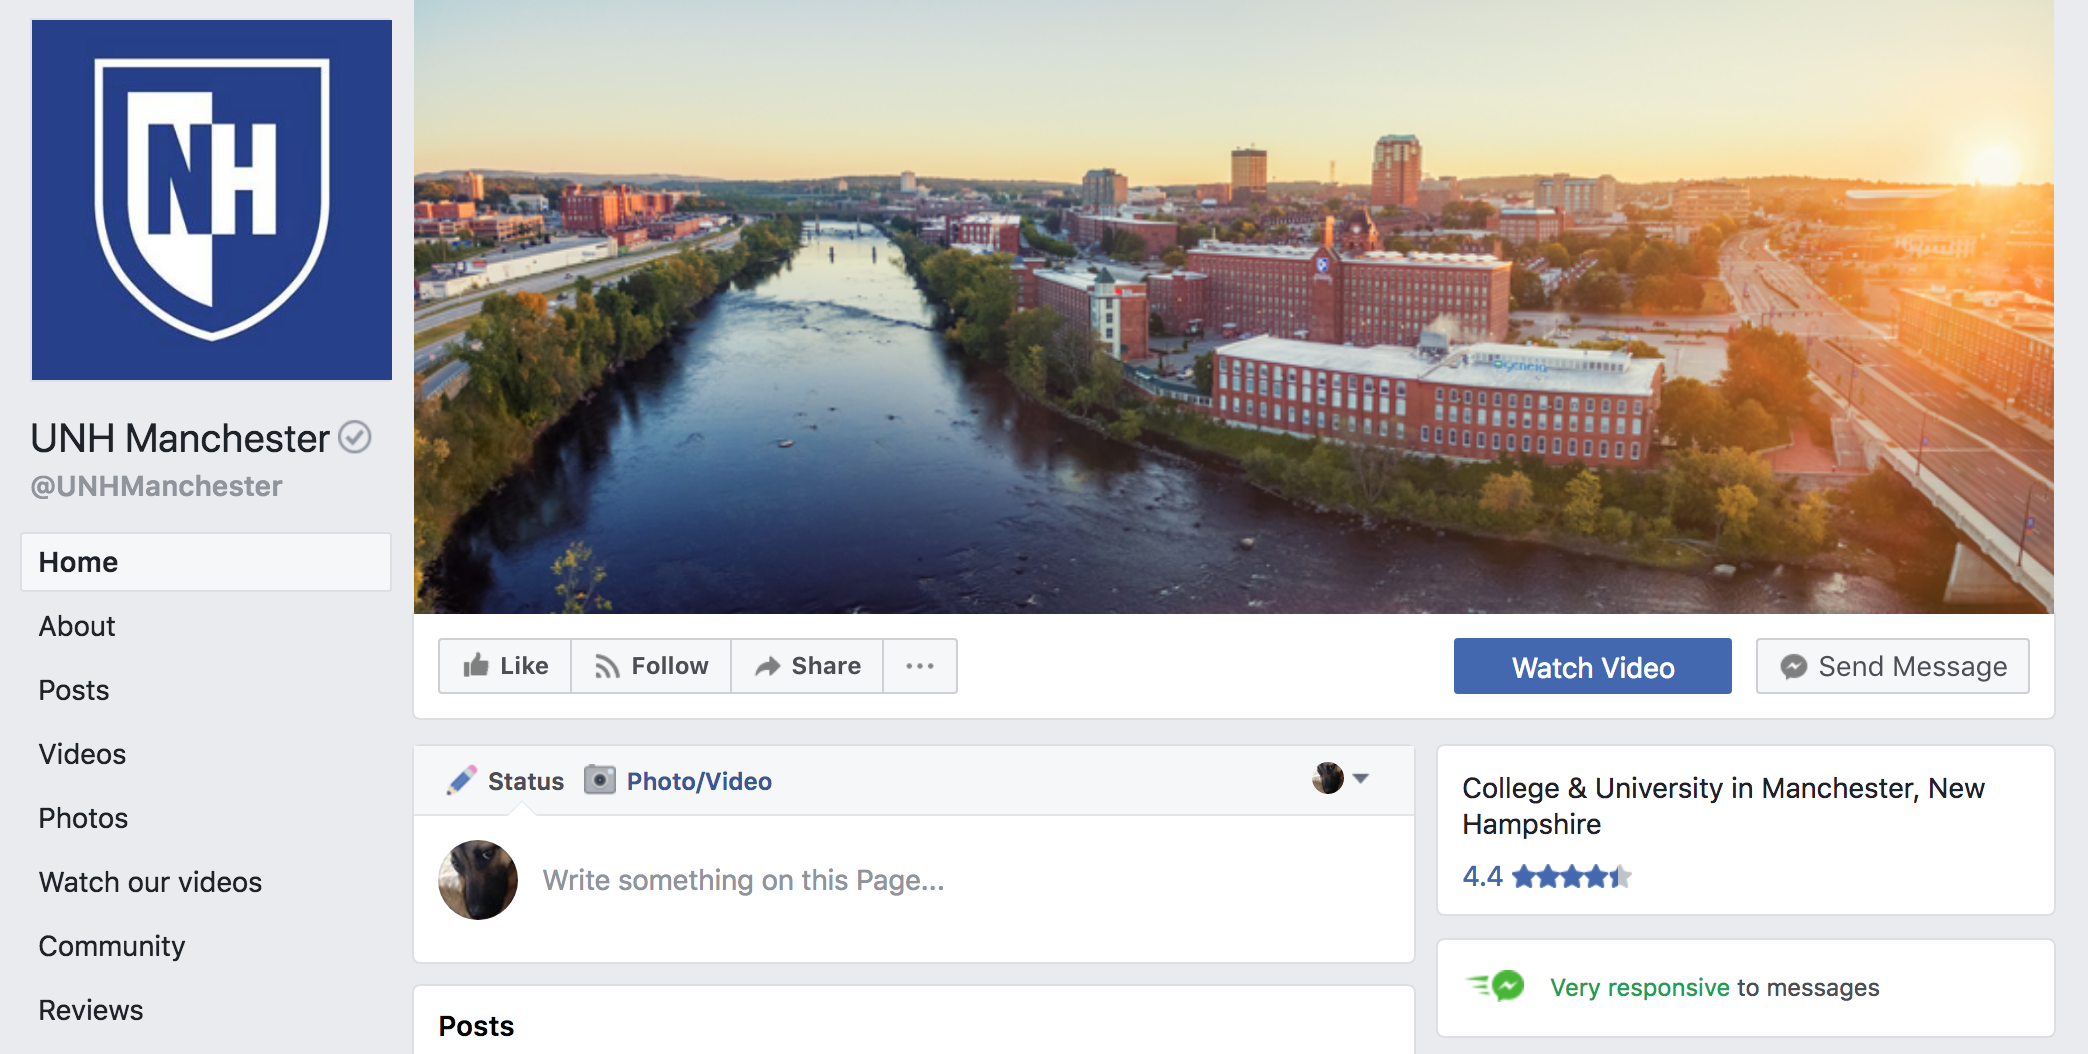 UNH Manchester Facebook page